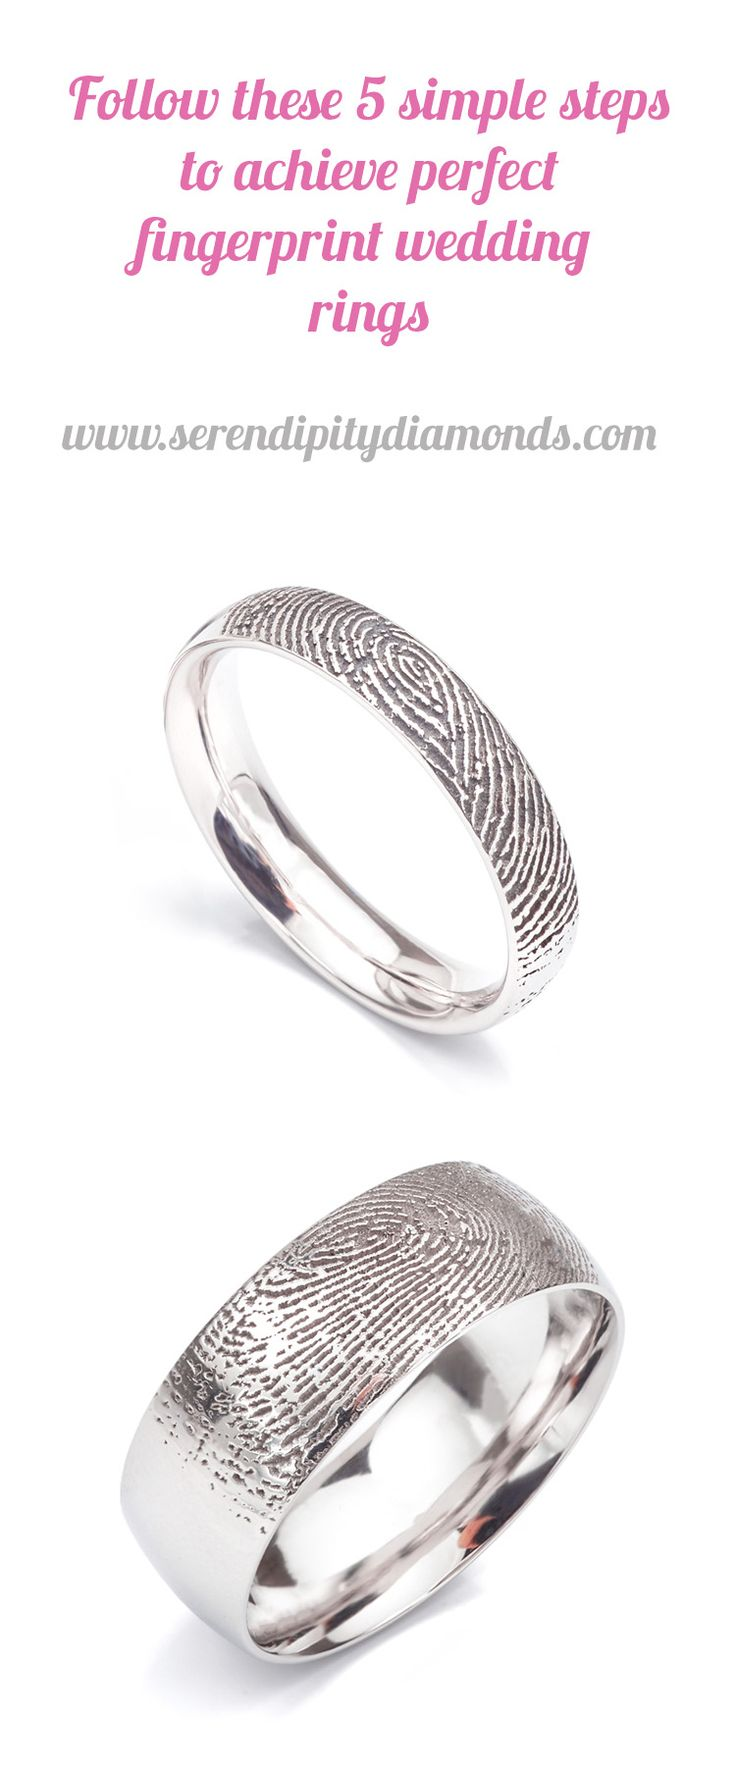 fingerprint wedding rings fingerprint wedding band Follow just 5 simple steps to achieve the perfect pair of uniquely engraved fingerprint wedding